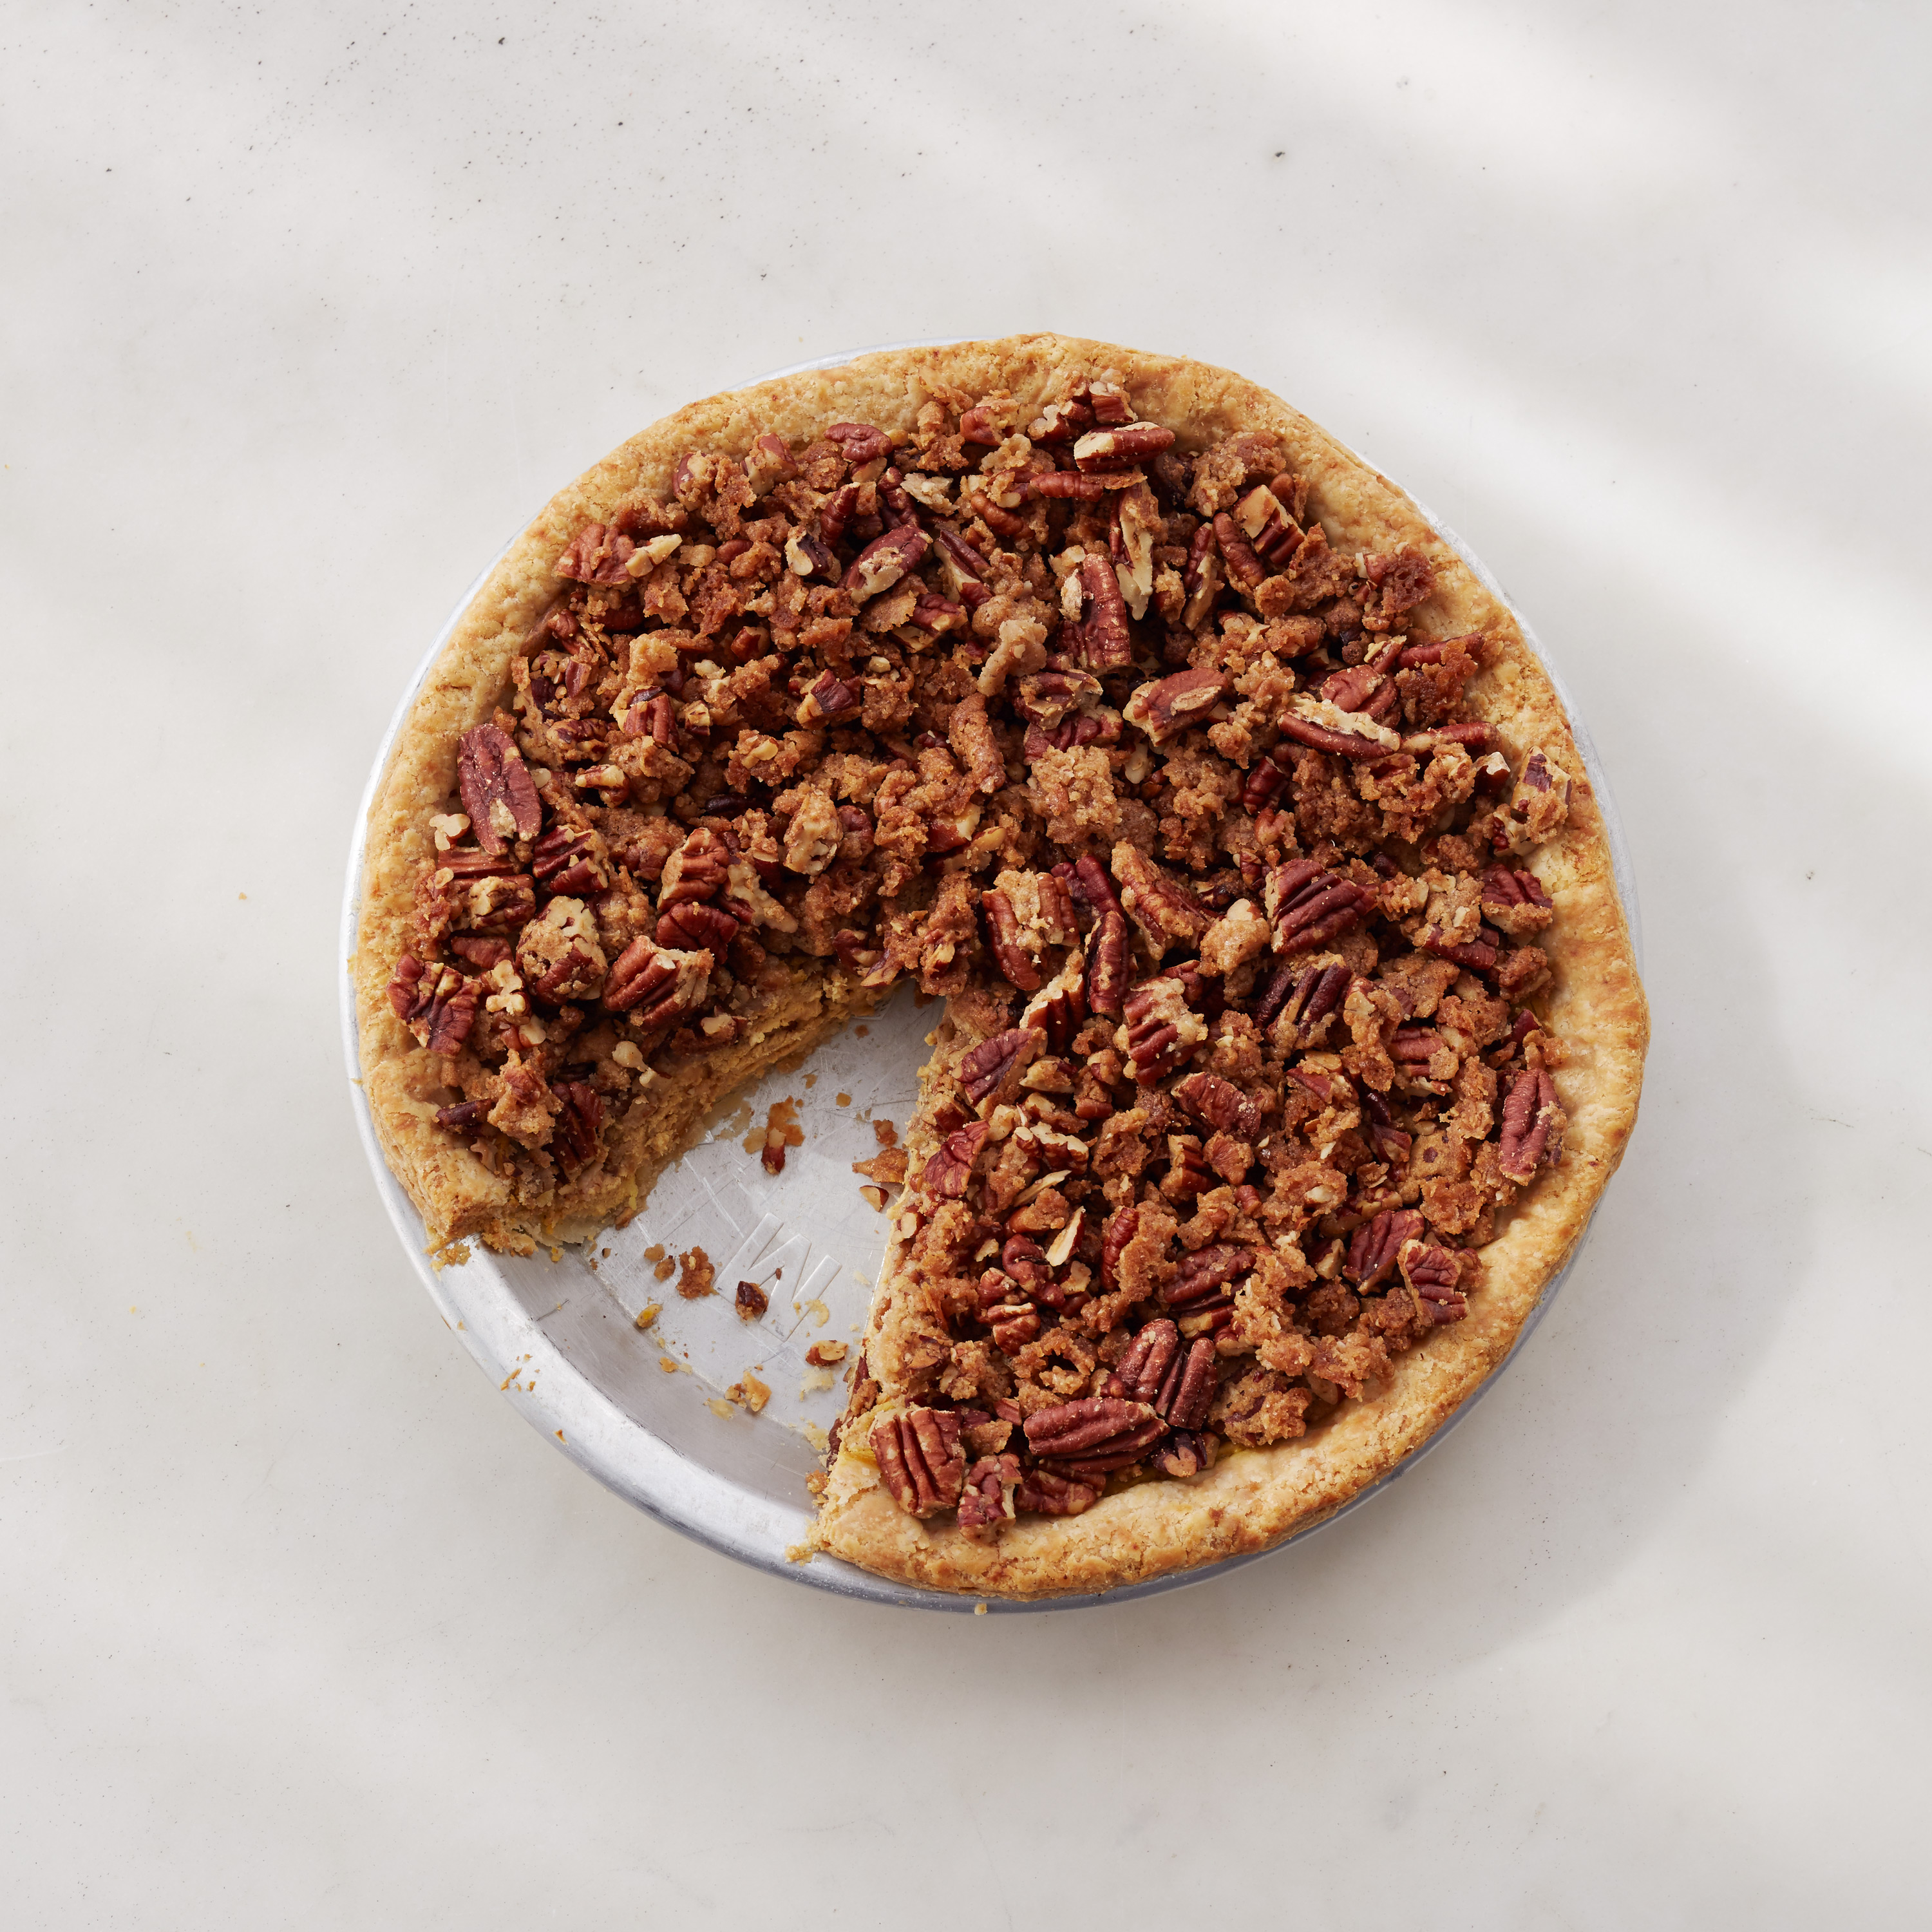 Add a pecan crumble topping for a new twist on traditional pumpkin pie this Thanksgiving.